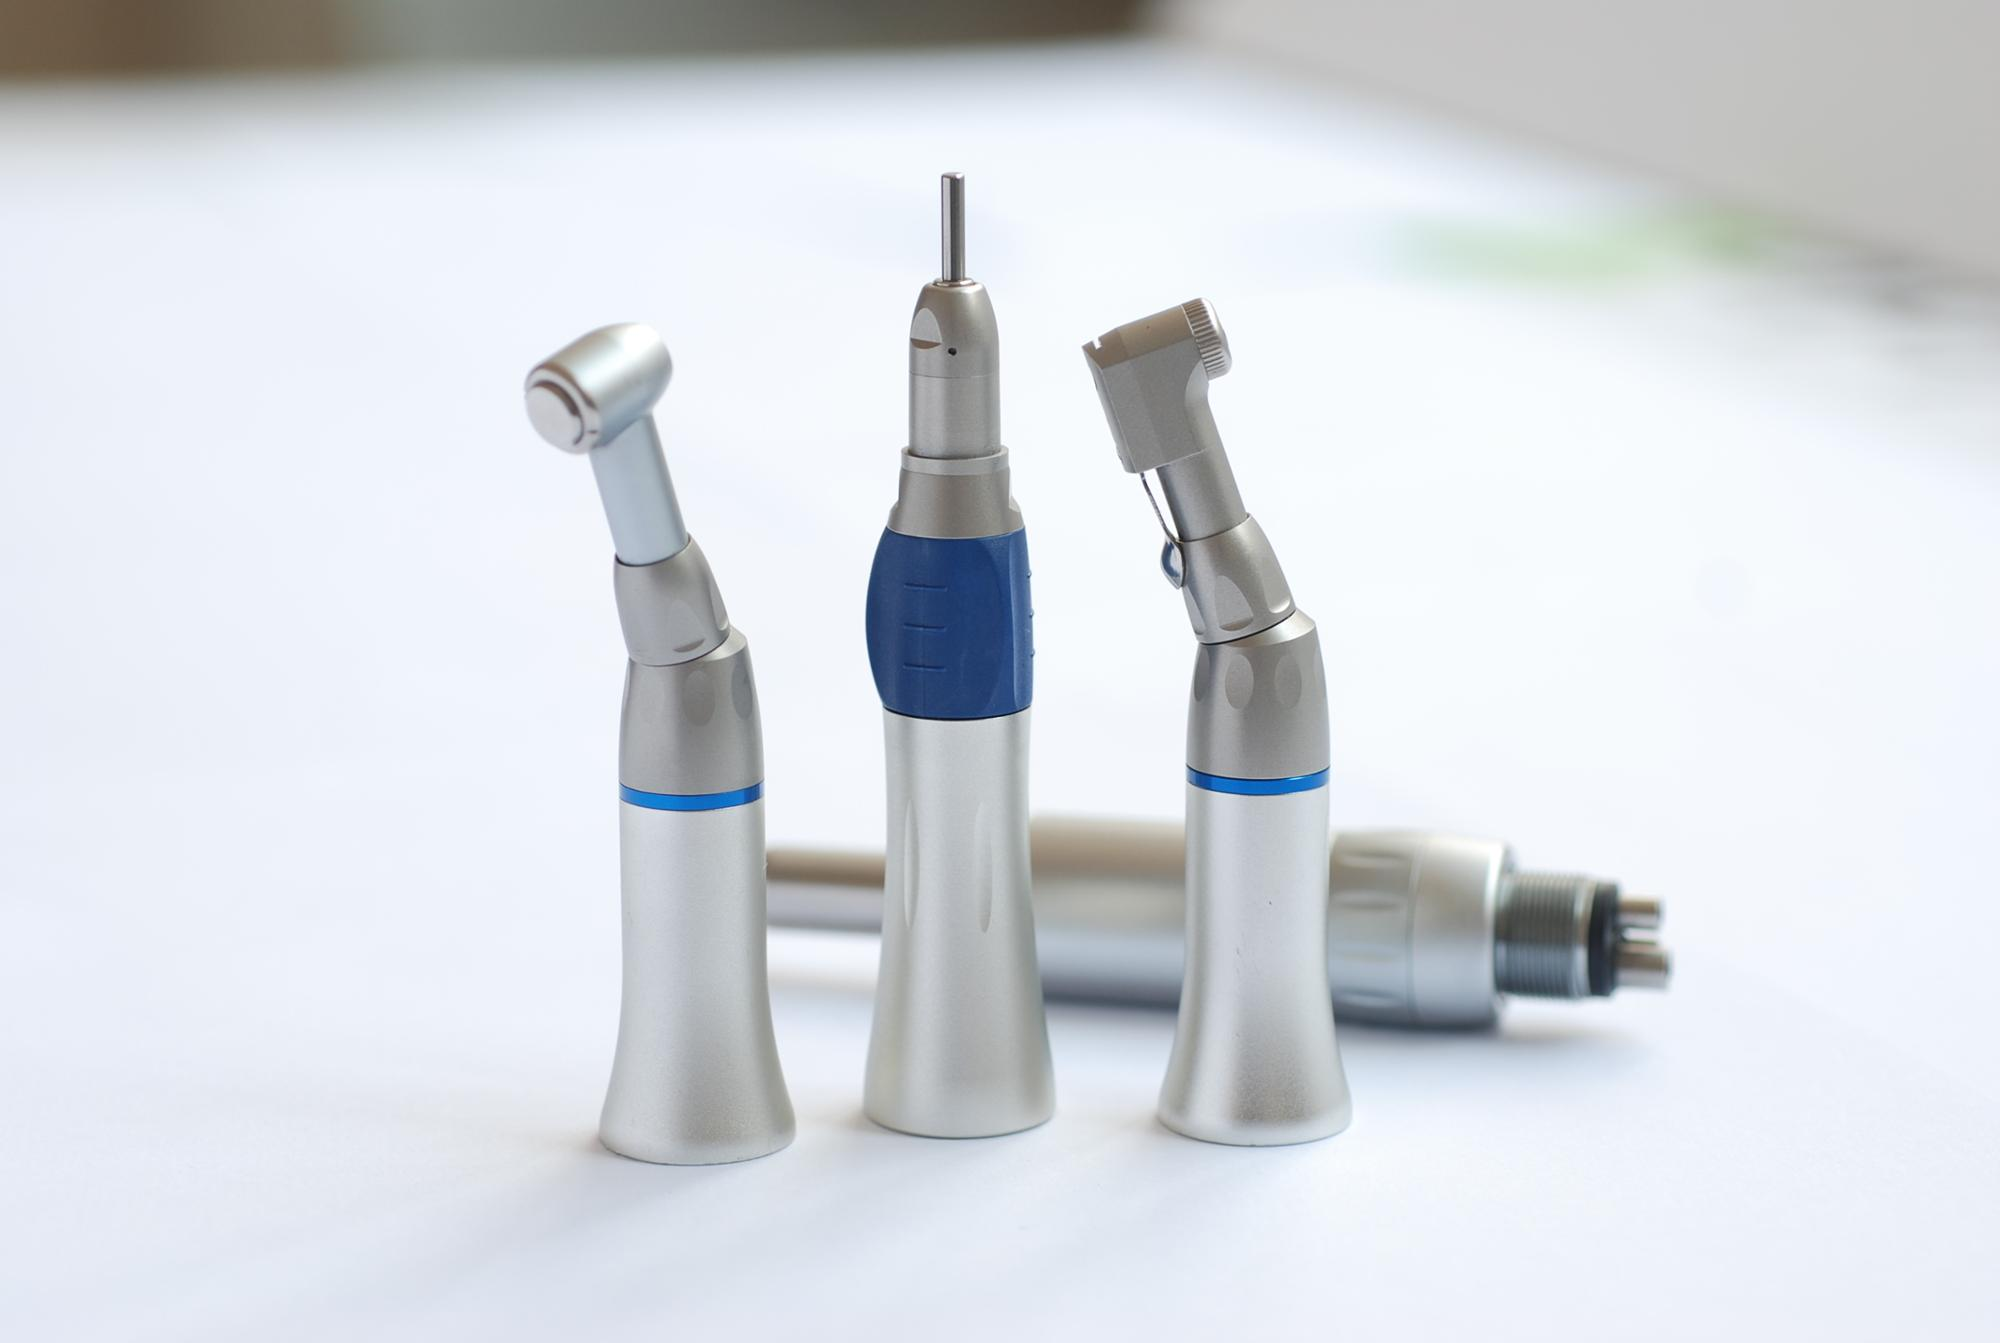 High And Low Speed Handpiece Set Low Speed Micromotor And Nose Cone Handpiece Nac-e High Speed Wrench Type Handpiece